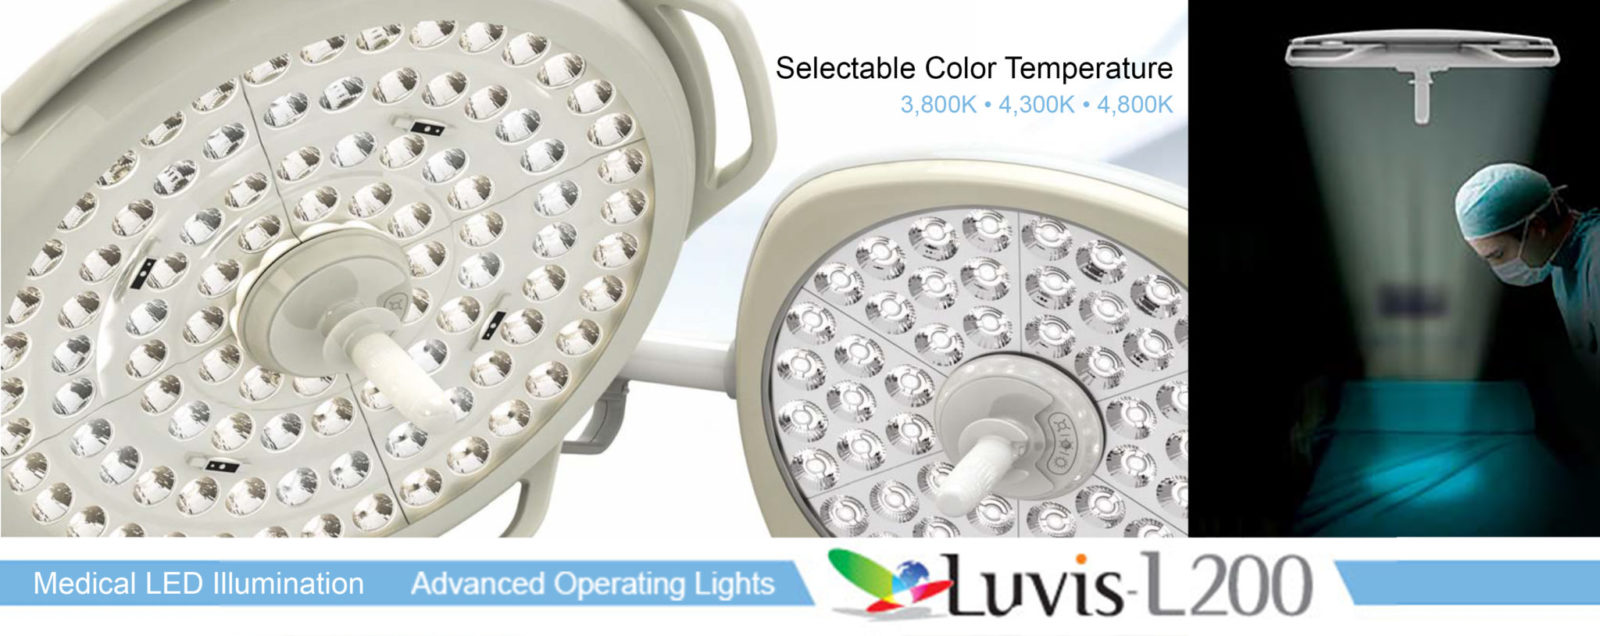 Luvis-Operating-Lights